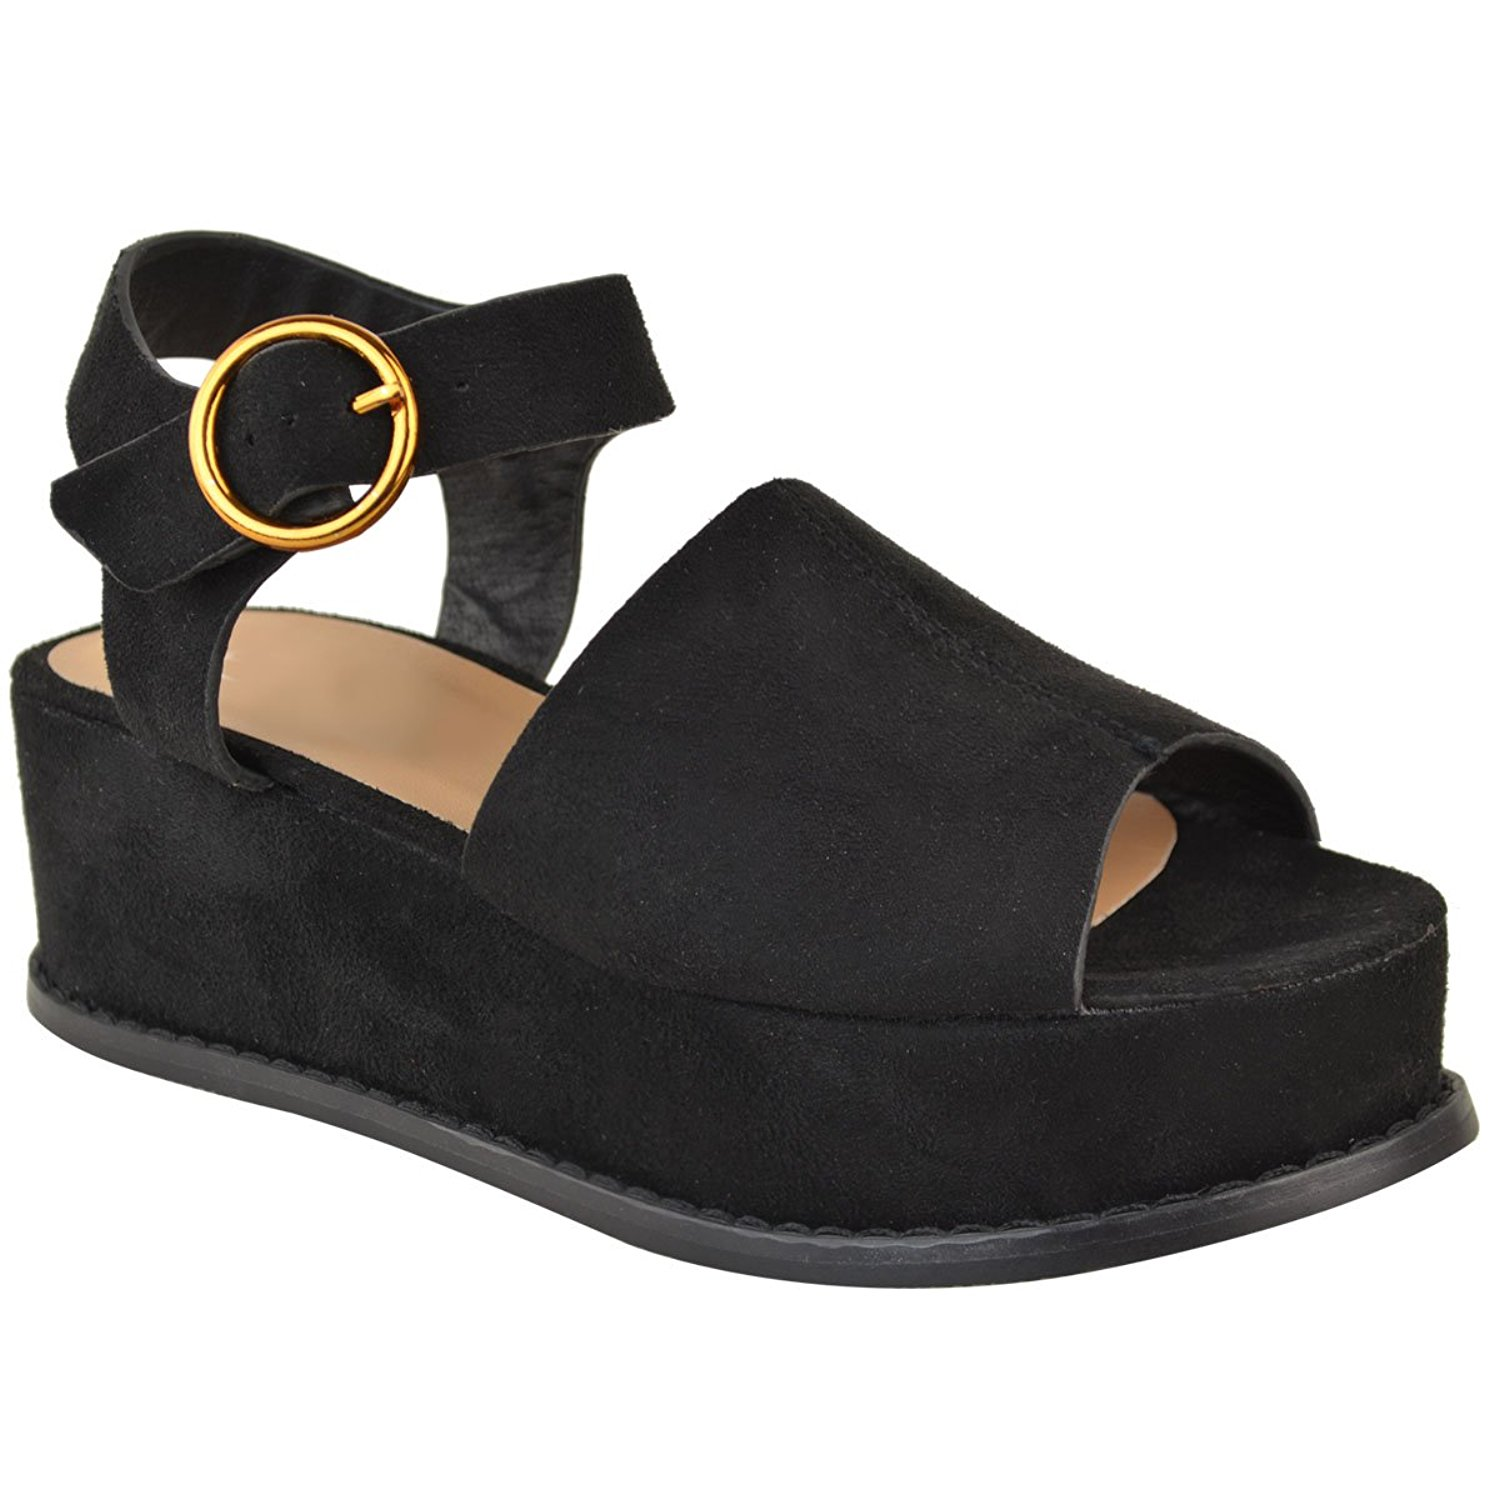 44a733eeb0f5 Get Quotations · Fashion Thirsty Womens Mid Heel Flatforms Wedge Platform Sandals  Open Toe Summer Size